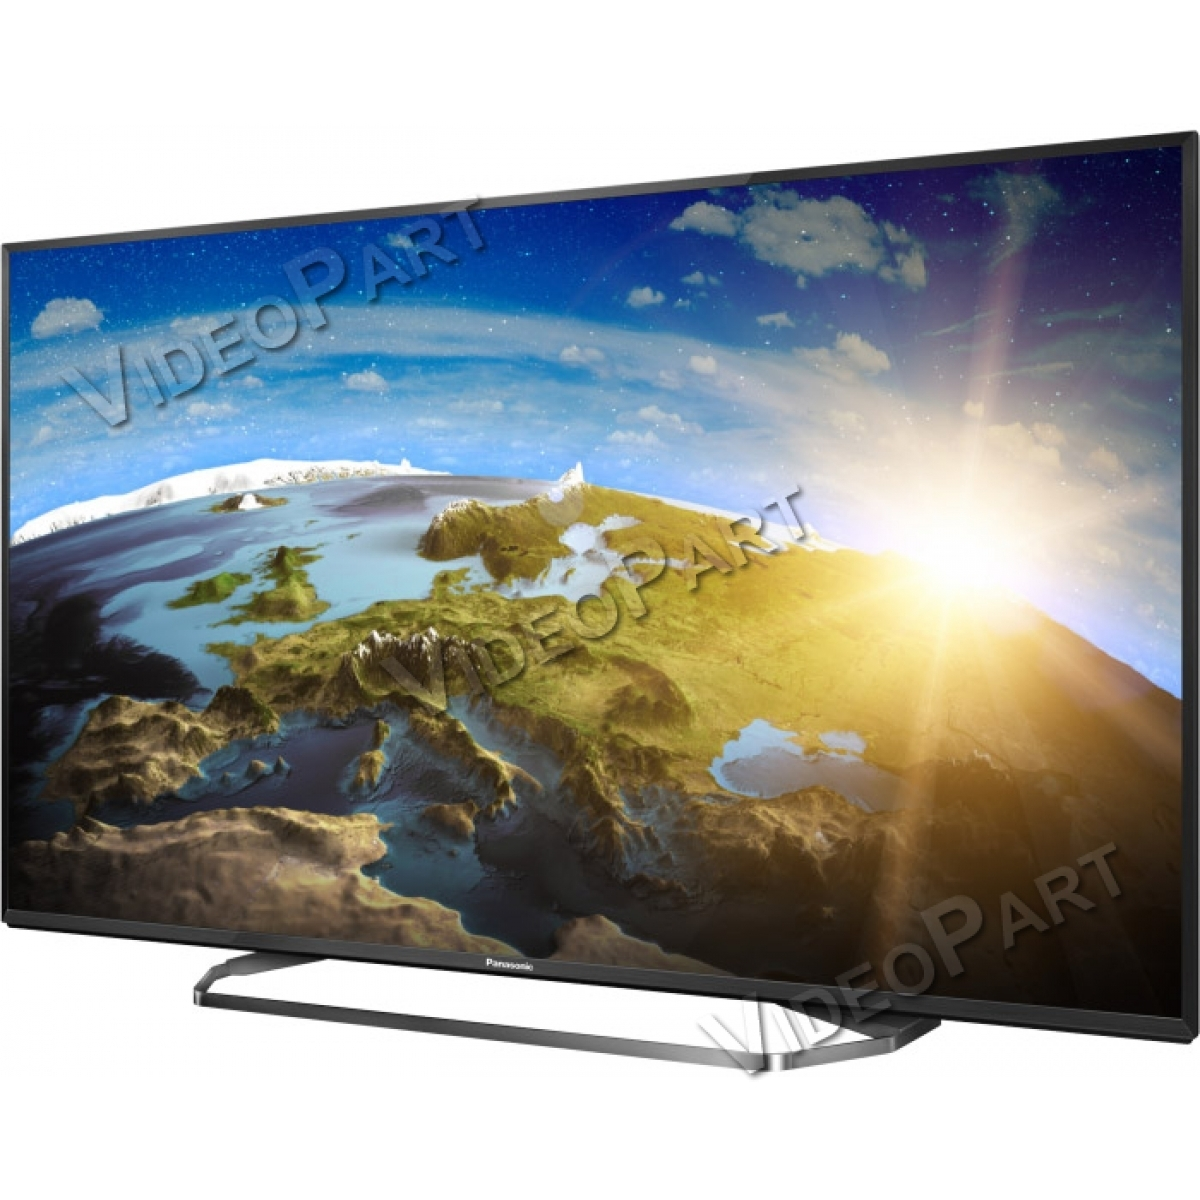 PANASONIC VIERA TX-43CX740E TV DESCARGAR CONTROLADOR